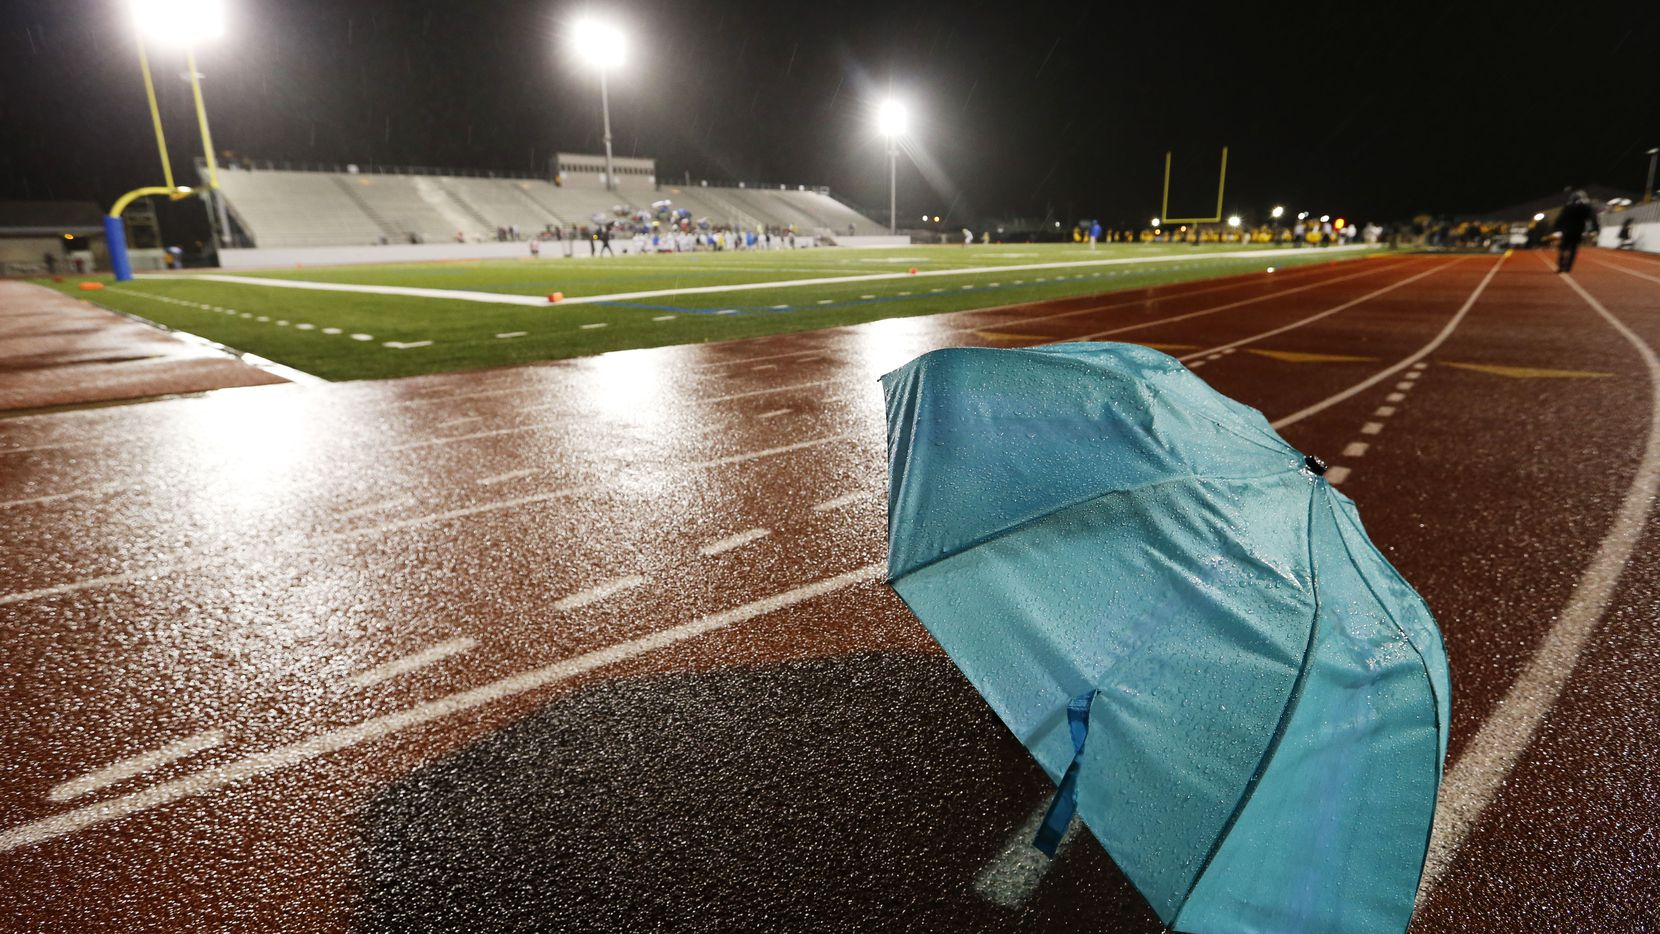 An umbrella rests on the track shortly before the start of the Garland and Garland Lakeview high school football game at Williams Stadium in Garland, on Oct. 22, 2015. (Vernon Bryant/The Dallas Morning News)